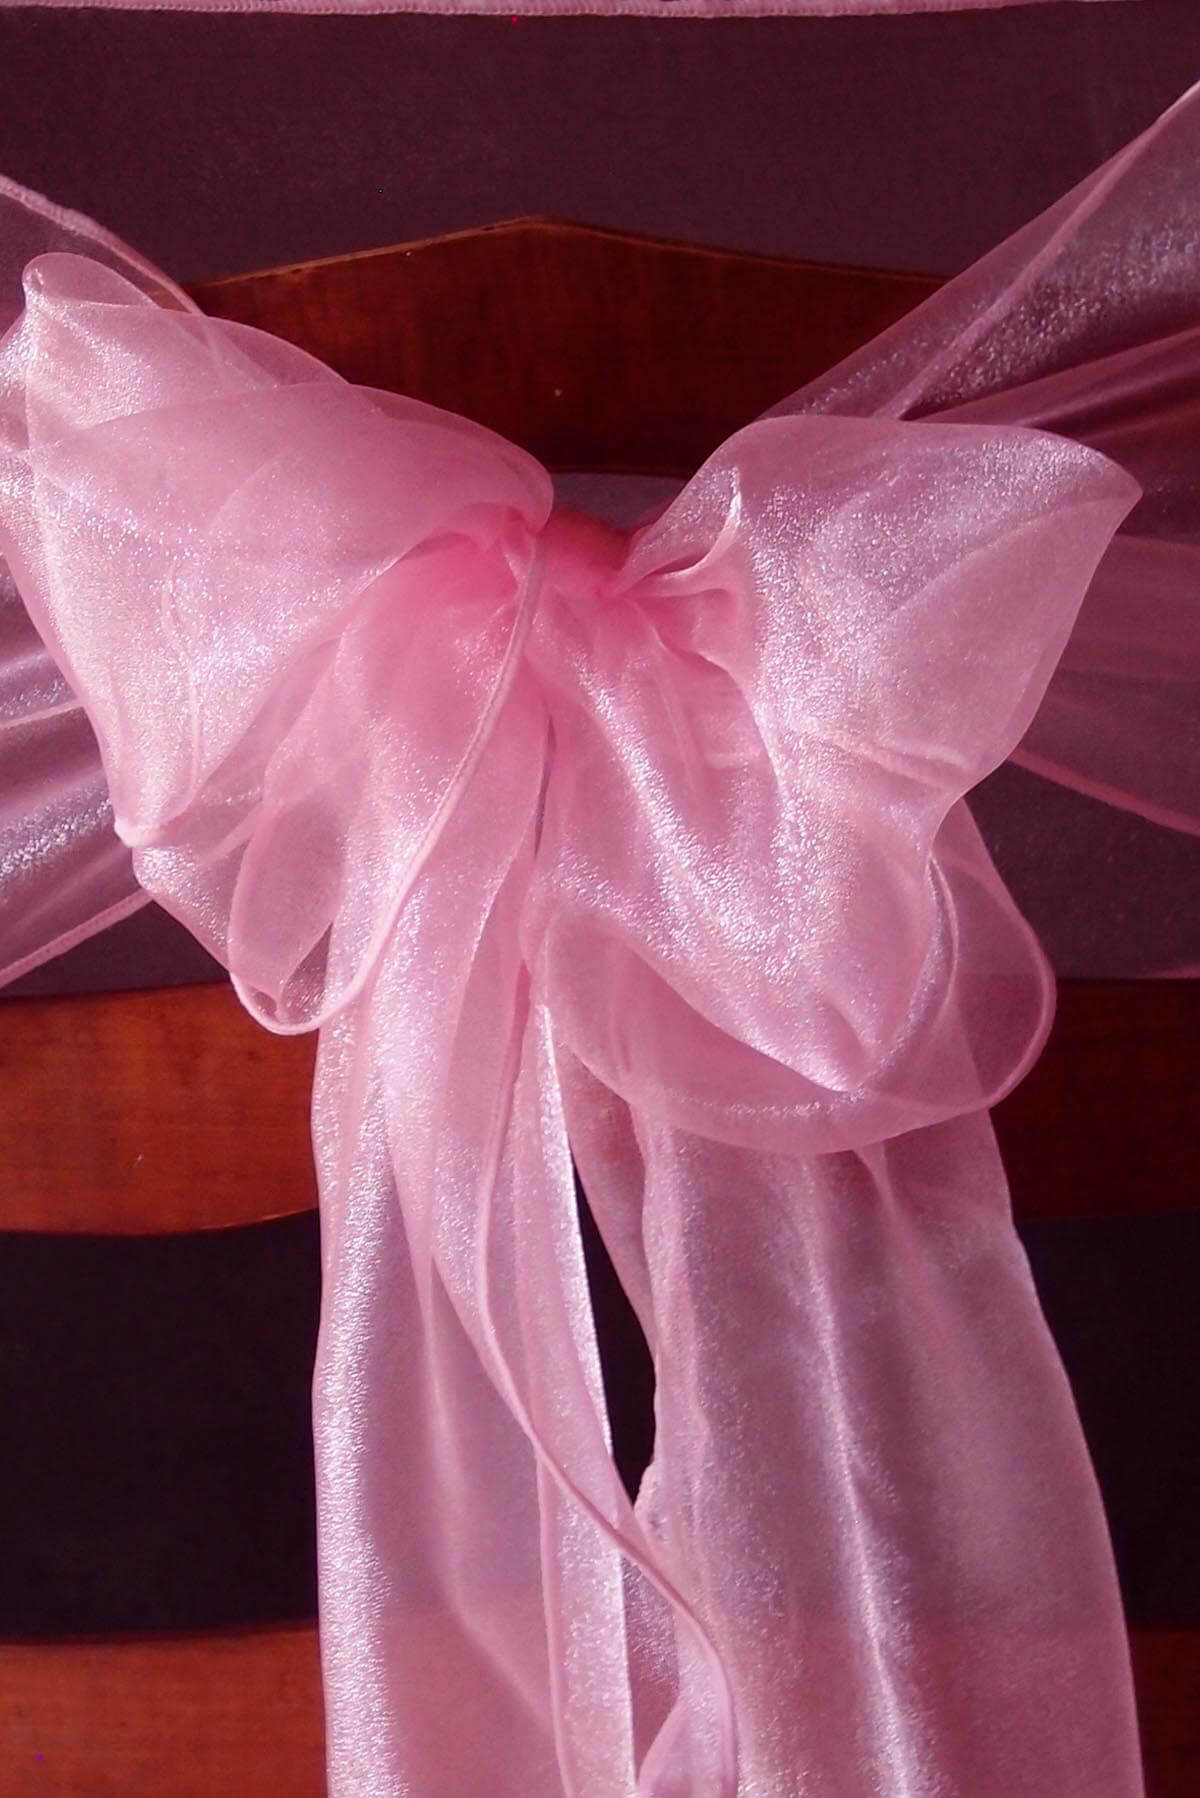 coral sashes for wedding chairs desk and chair with storage bin 10 organza pink